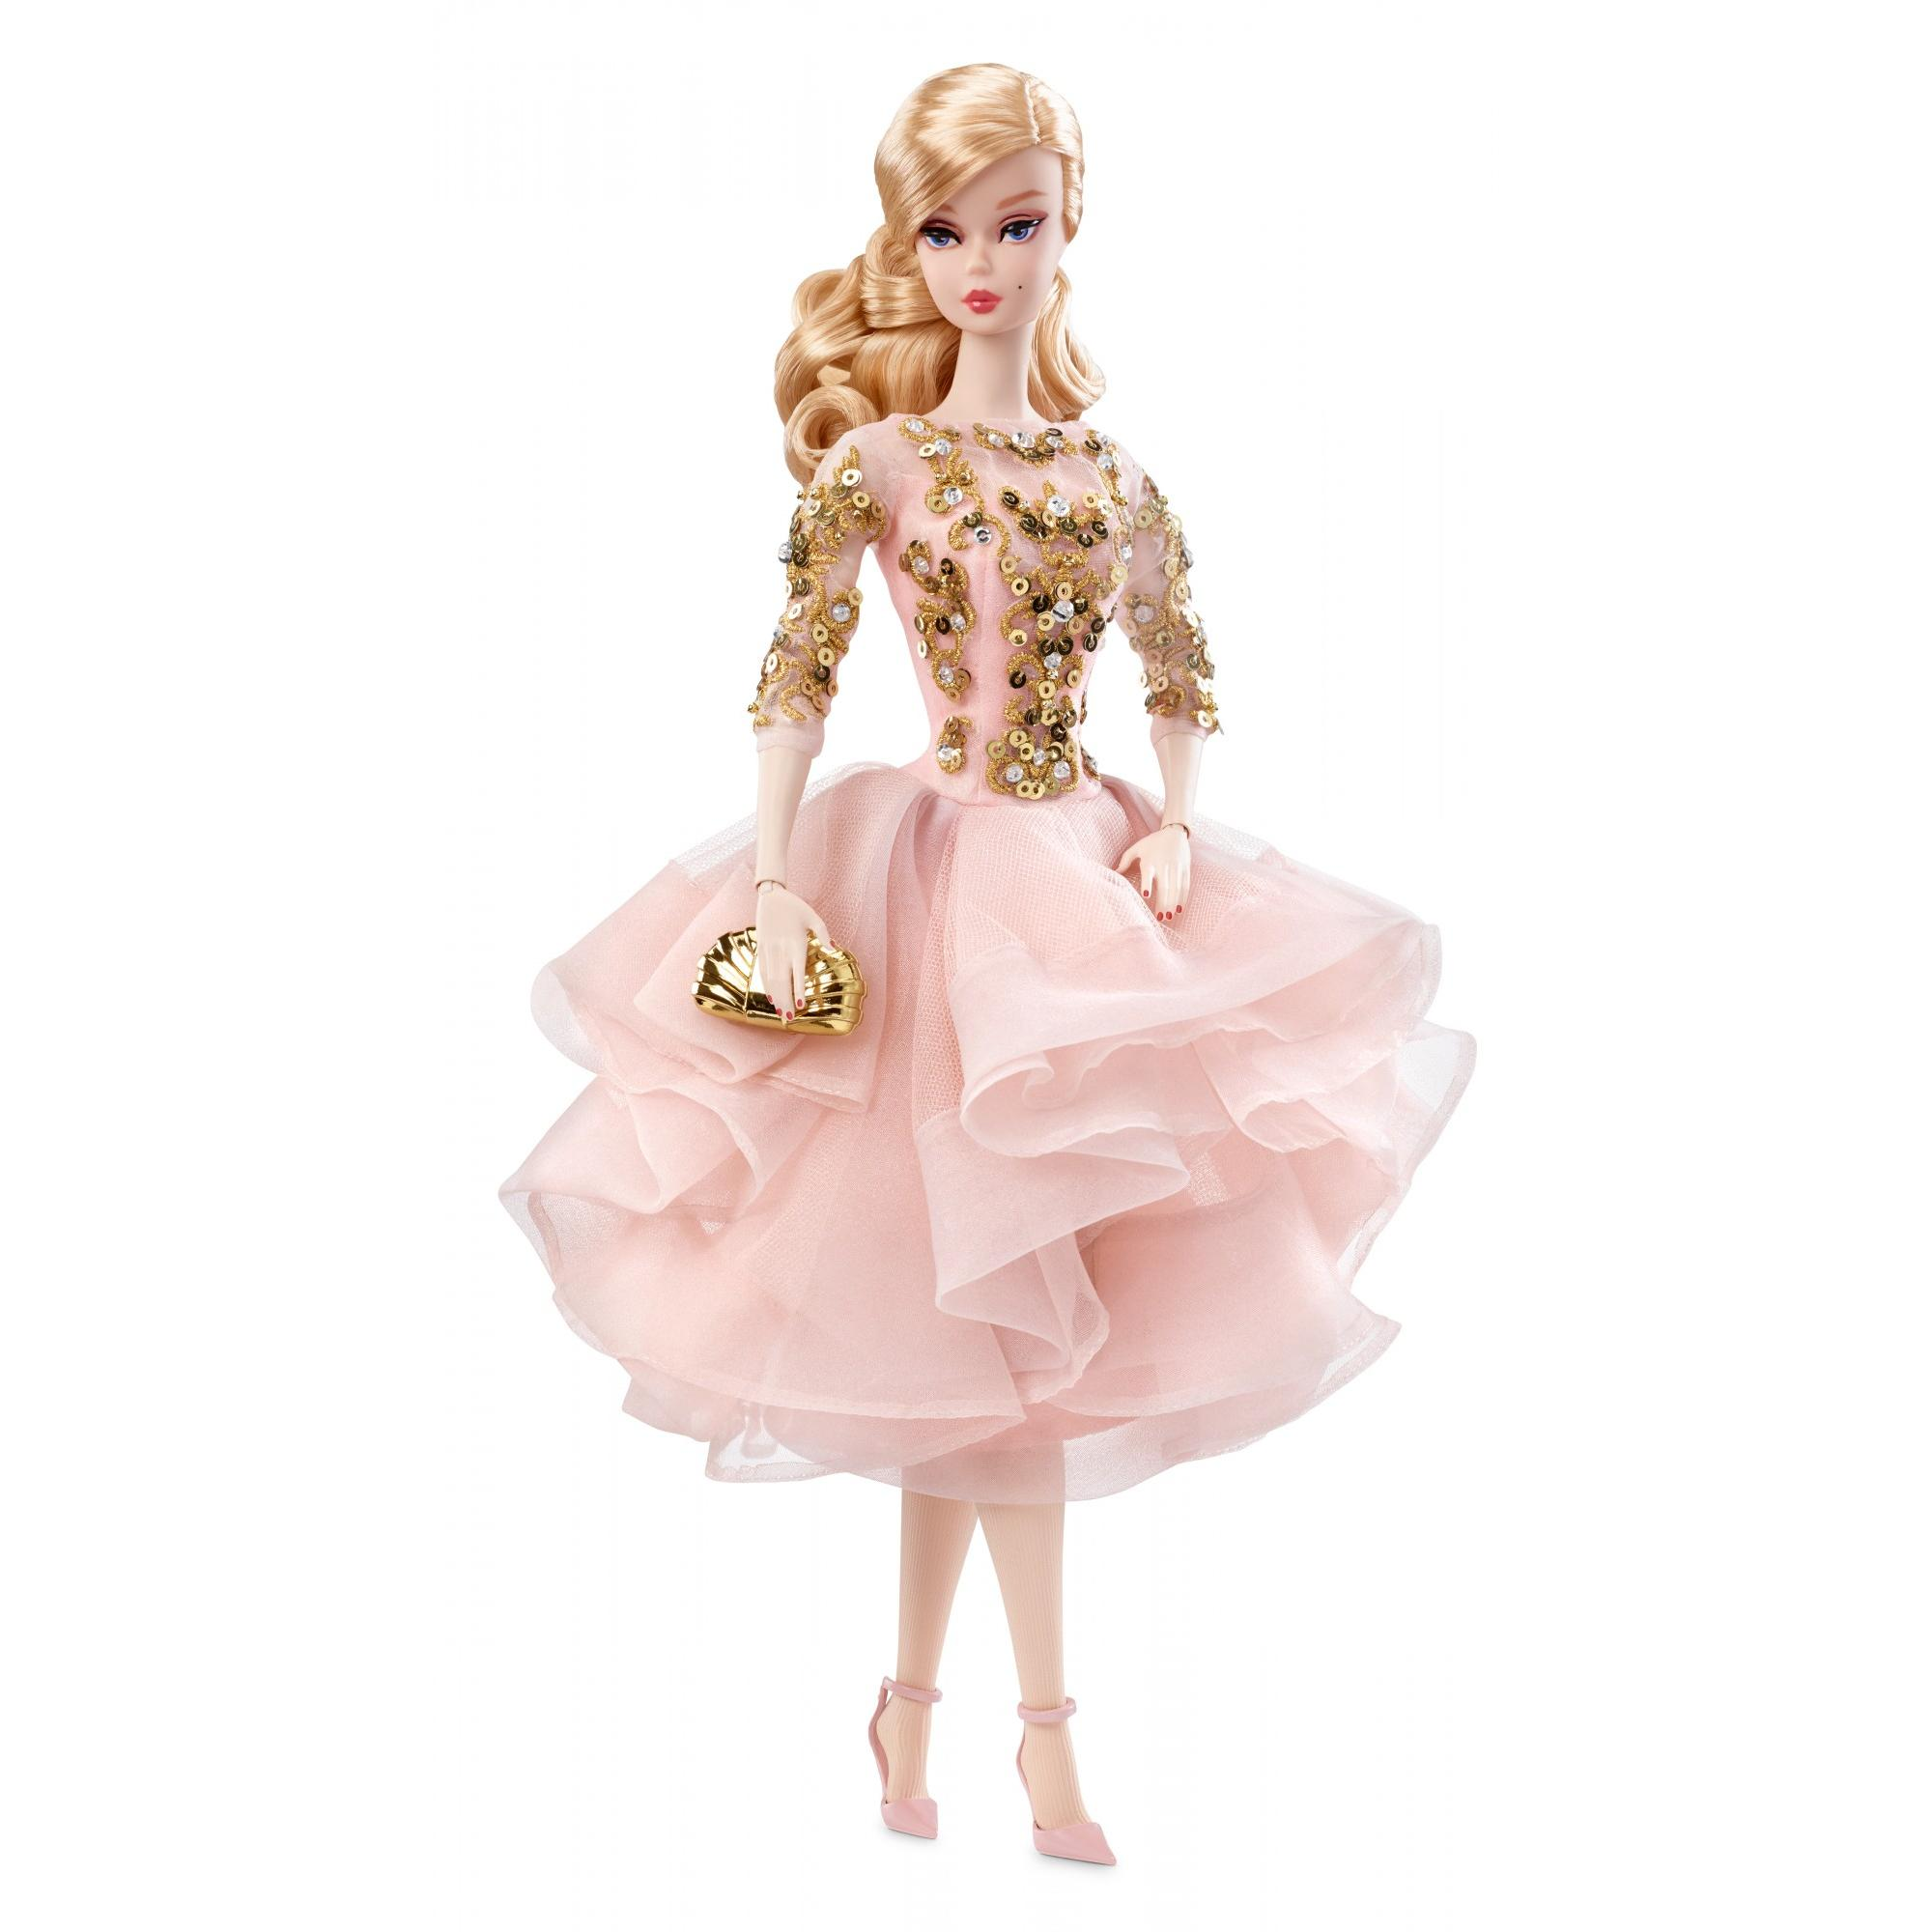 Barbie Collector Barbie Fashion Model Collection Doll Blush & Gold Cocktail Dress